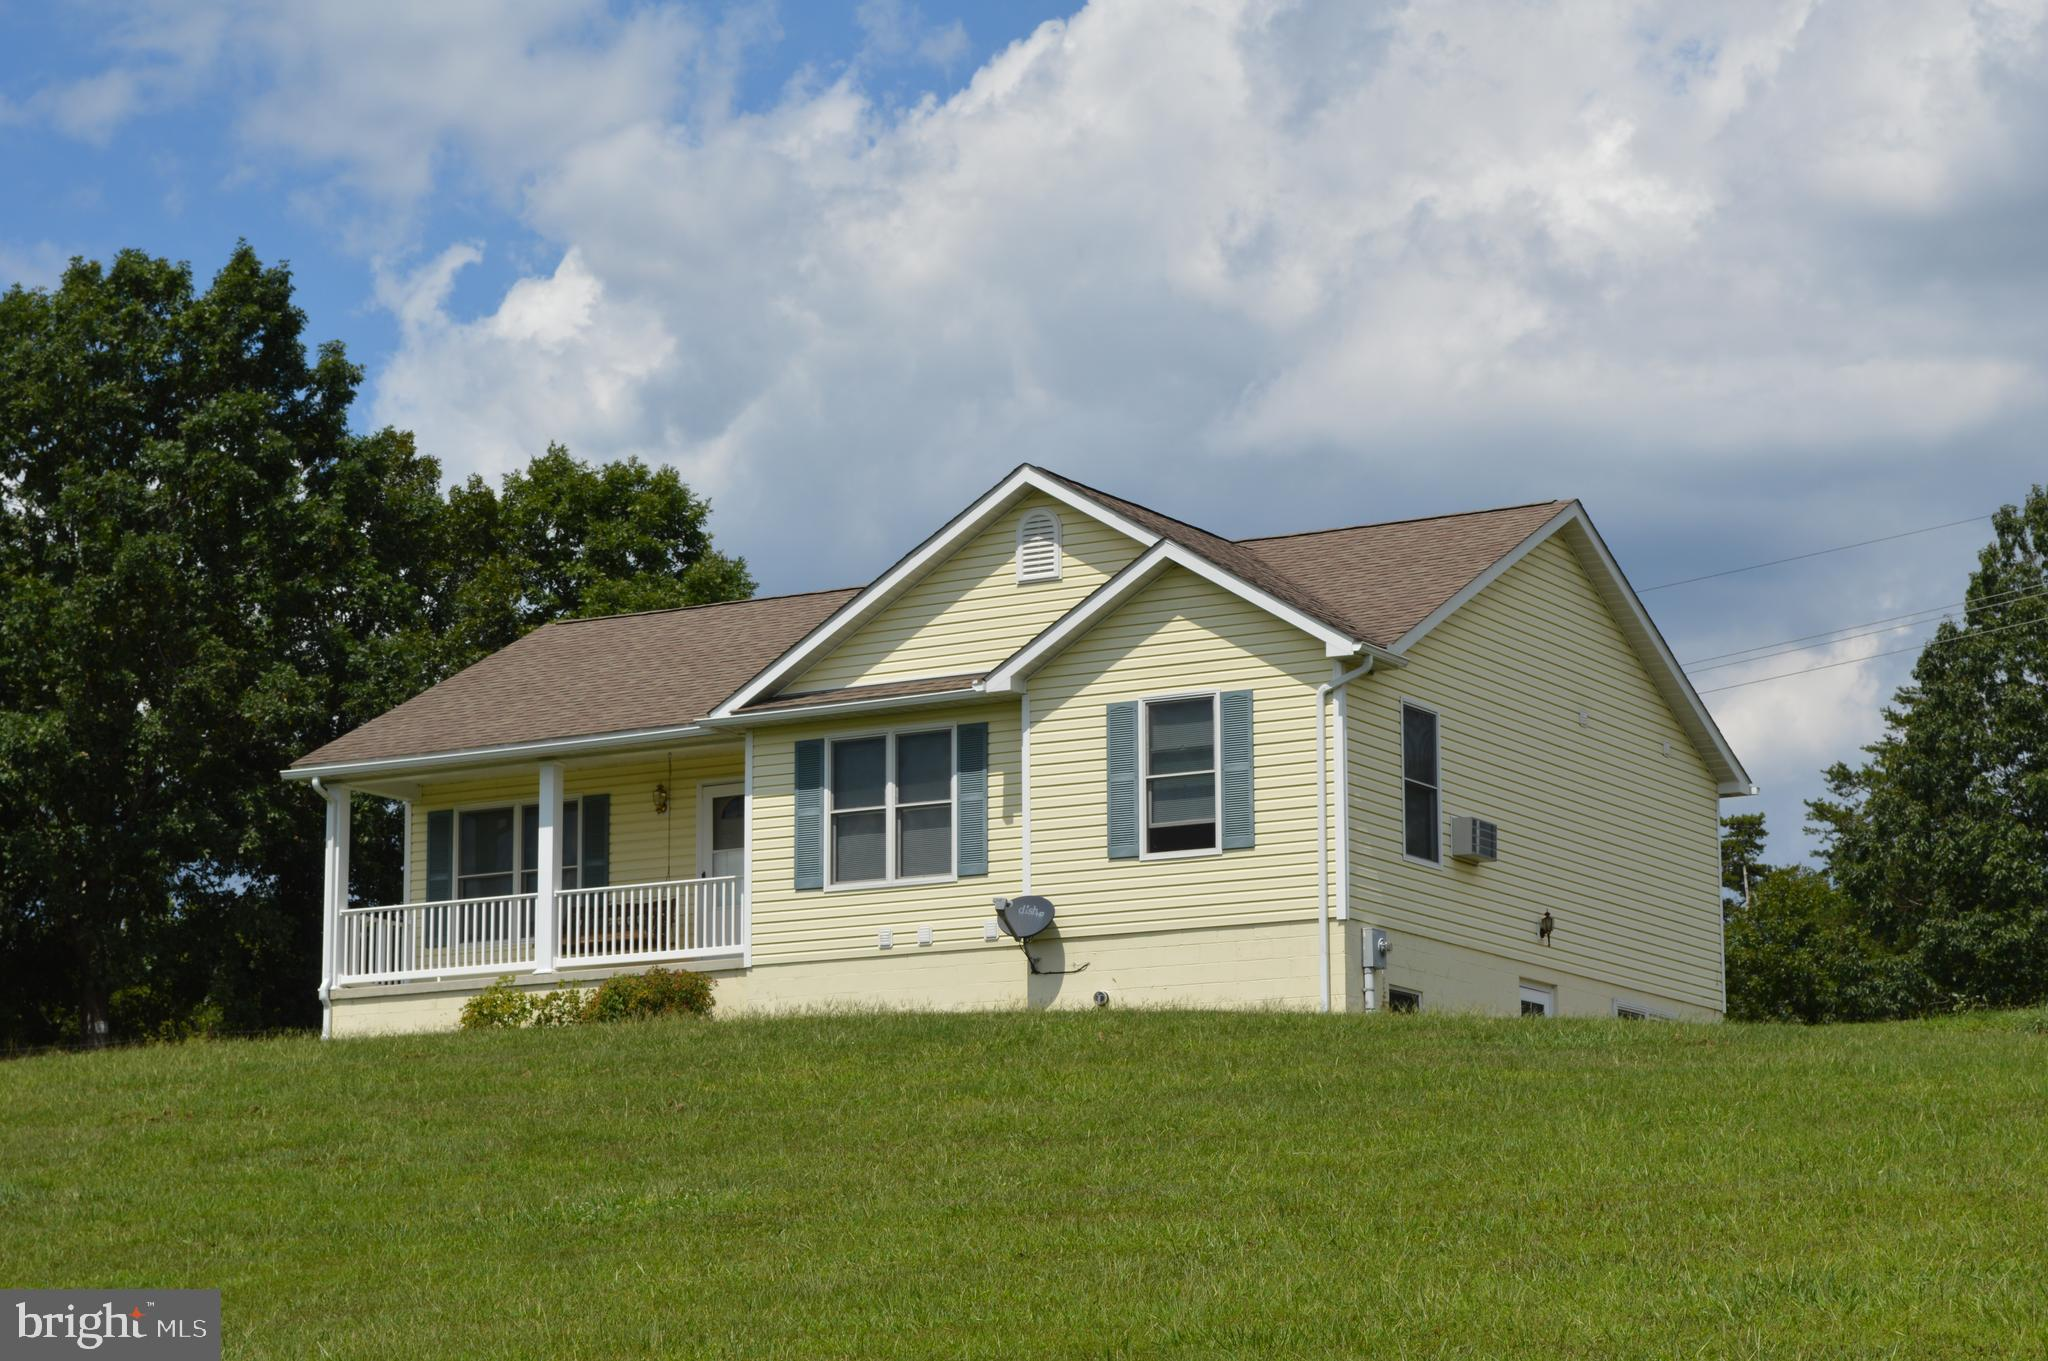 467 Brooke Lane, Ridgeley, WV 26753